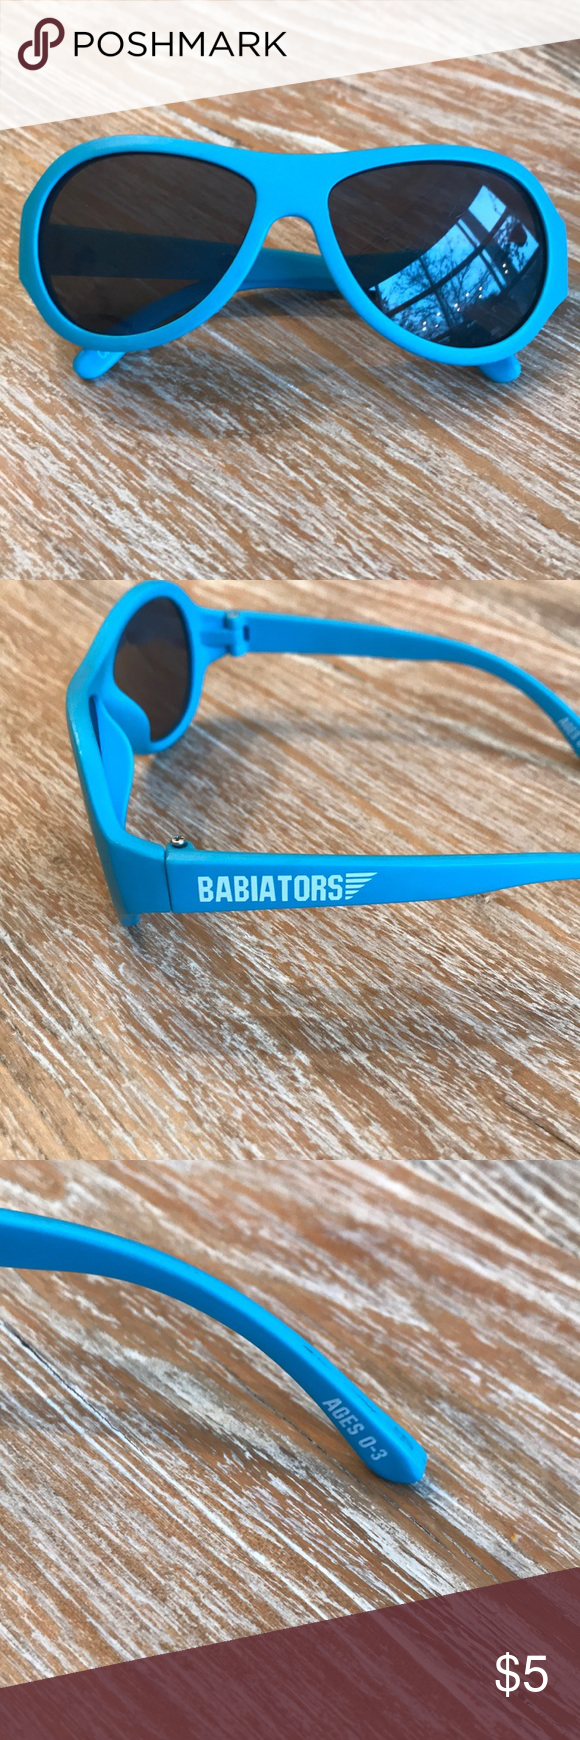 57811d8fb5d Babiator sunglasses (sizes 0-3) Babiator sunglasses (sizes 0-3). Bright  blue in color. Great condition. We loved these glasses and they were so  comfortable ...